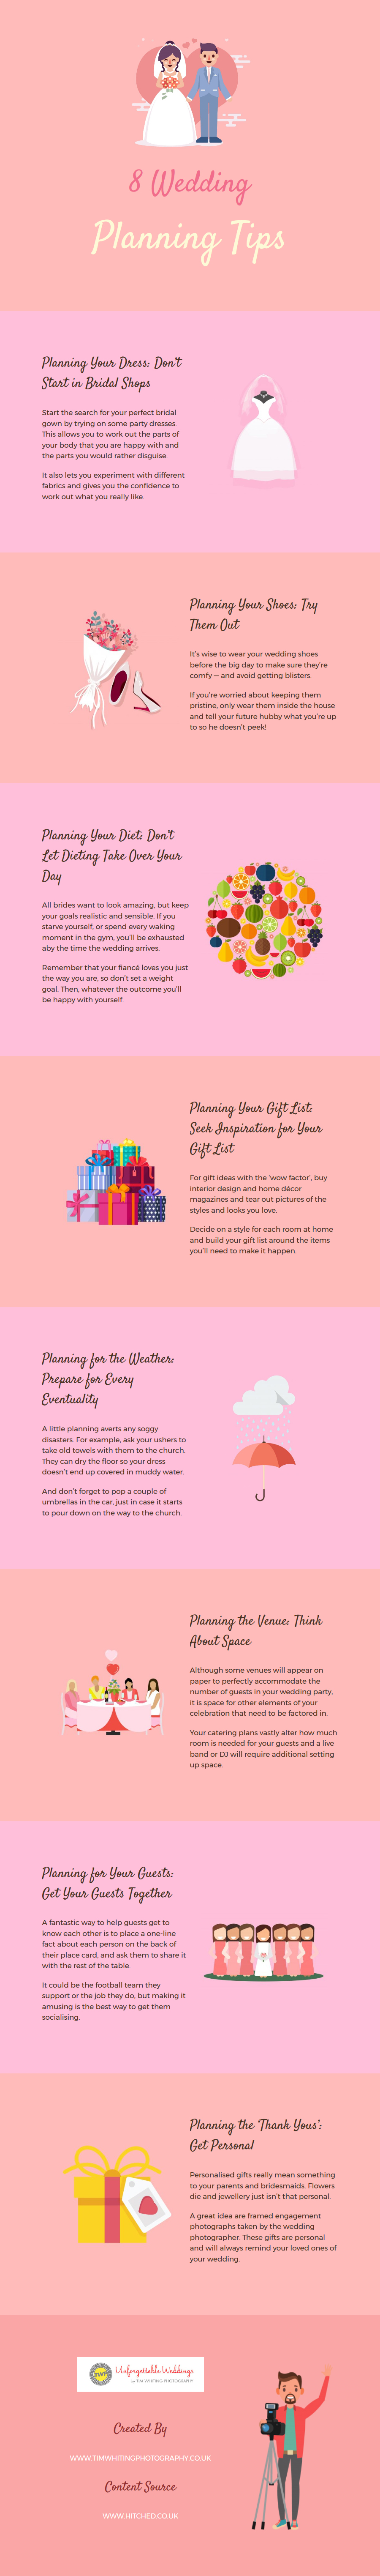 8 Wedding Planning Tips.jpg